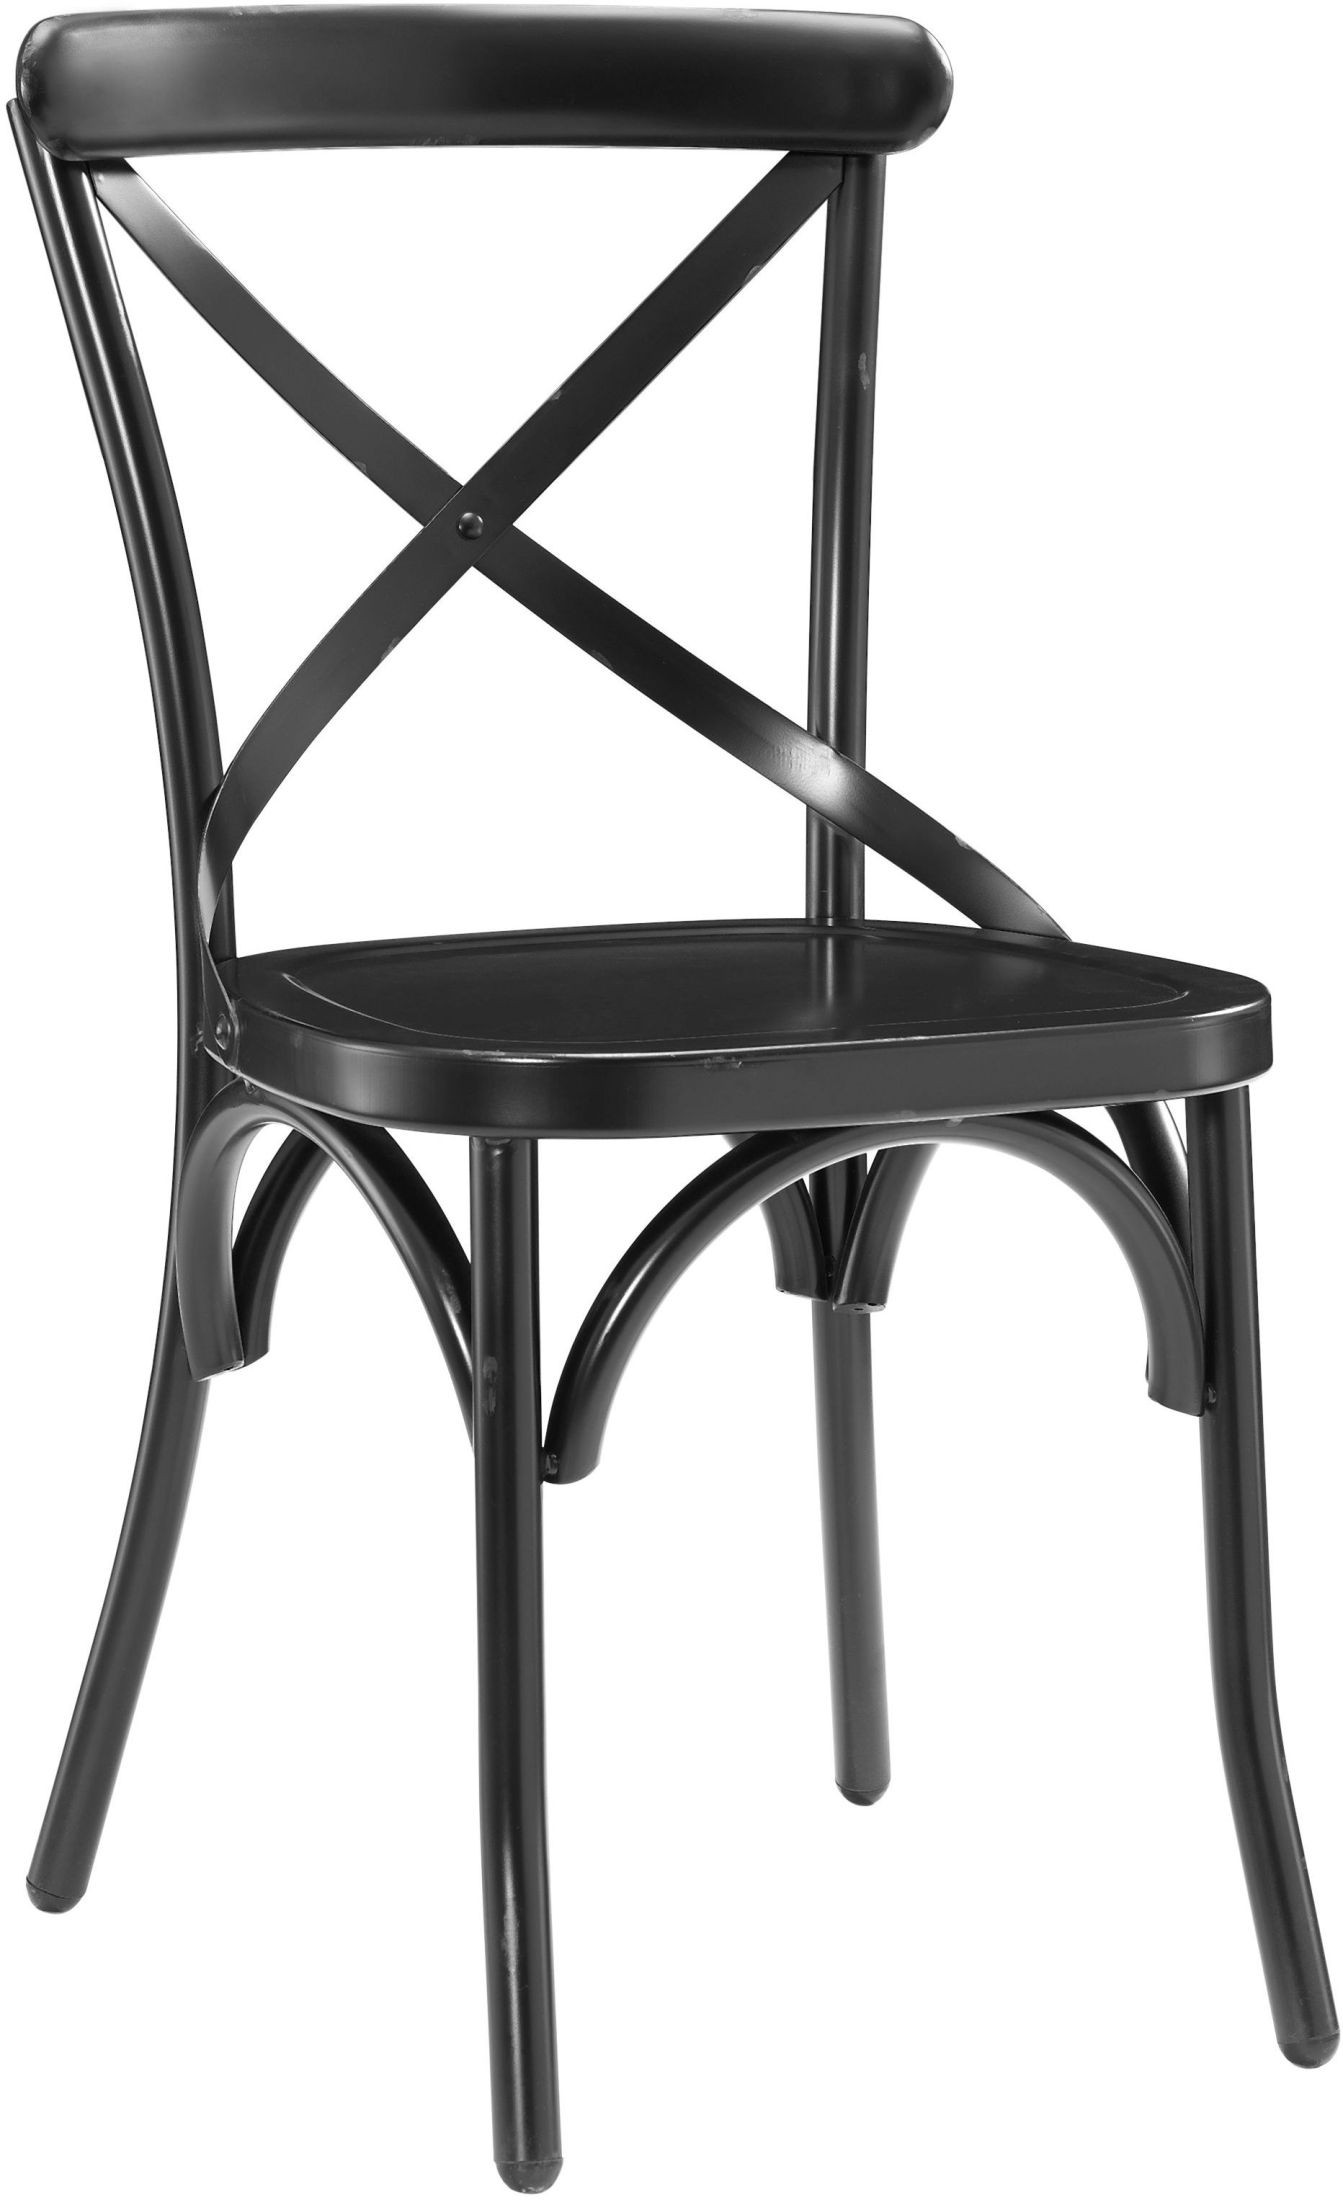 distressed black dining chairs walnut antique metal chair set of 2 from